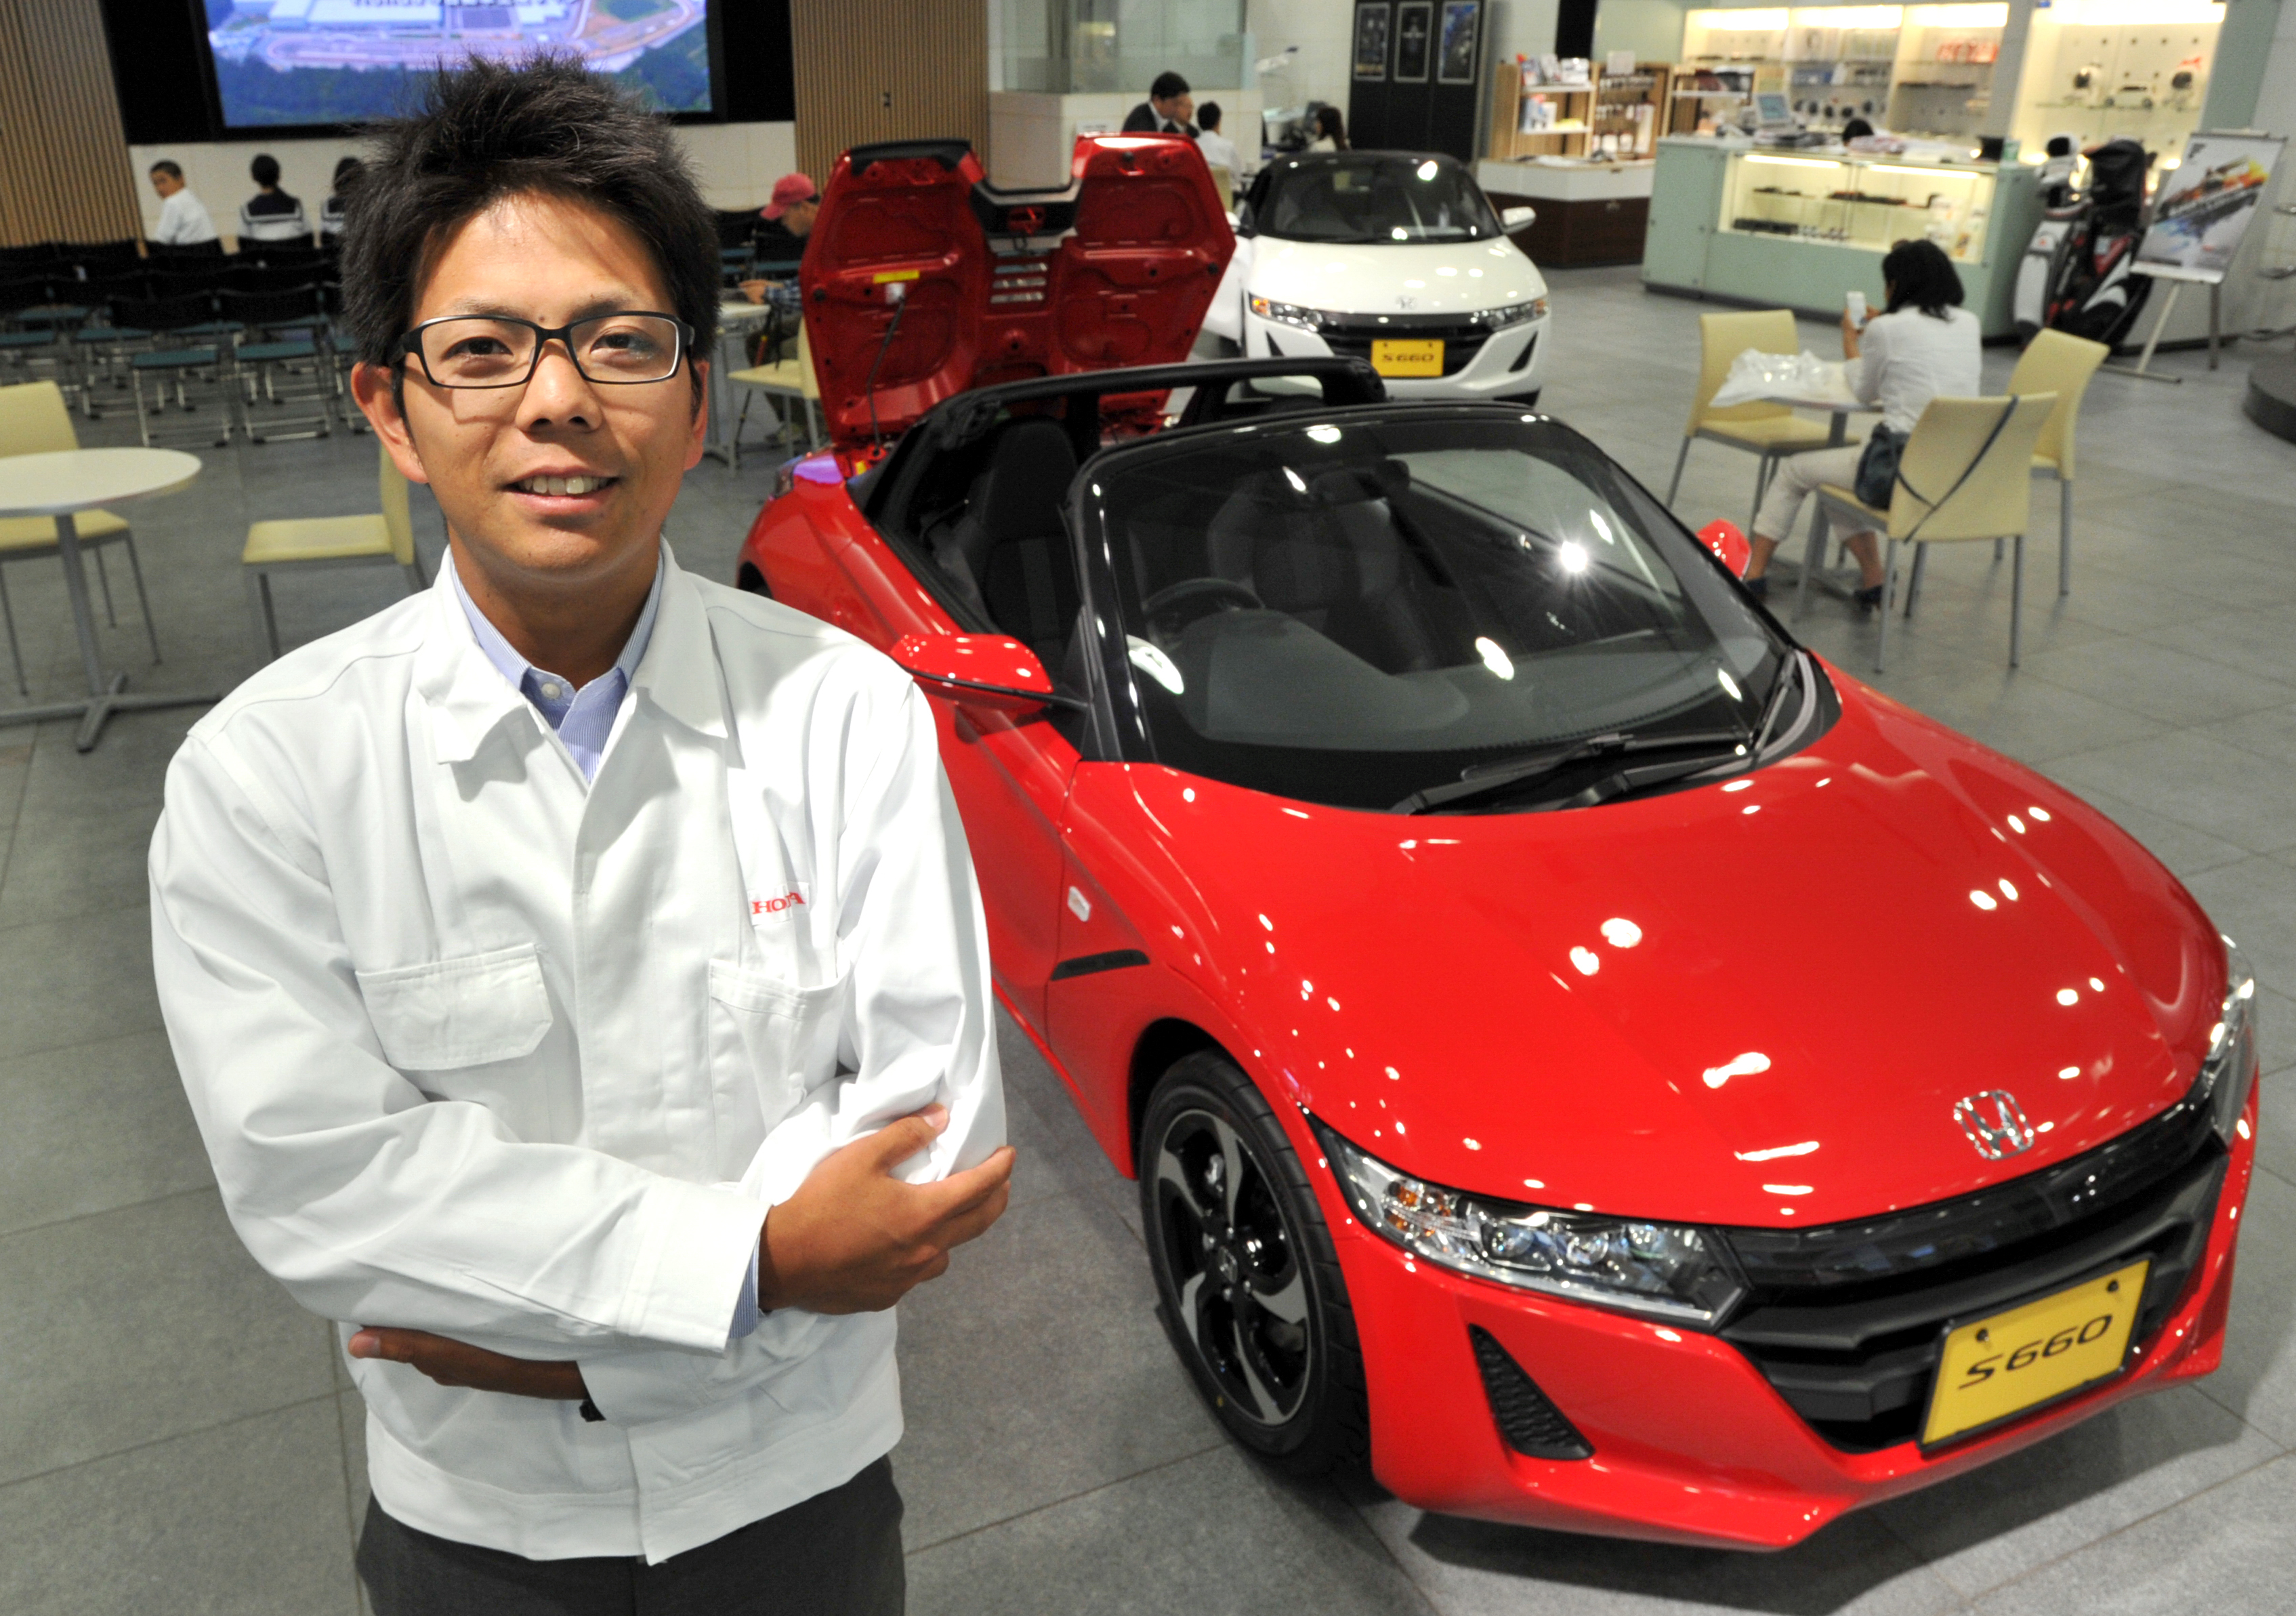 Ryo Mukumoto, the youngest ever manager to oversee the development of a new Honda Motor Co. car, poses with the S660 sports car, at Honda headquarters in Tokyo in May.   YOSHIAKI MIURA